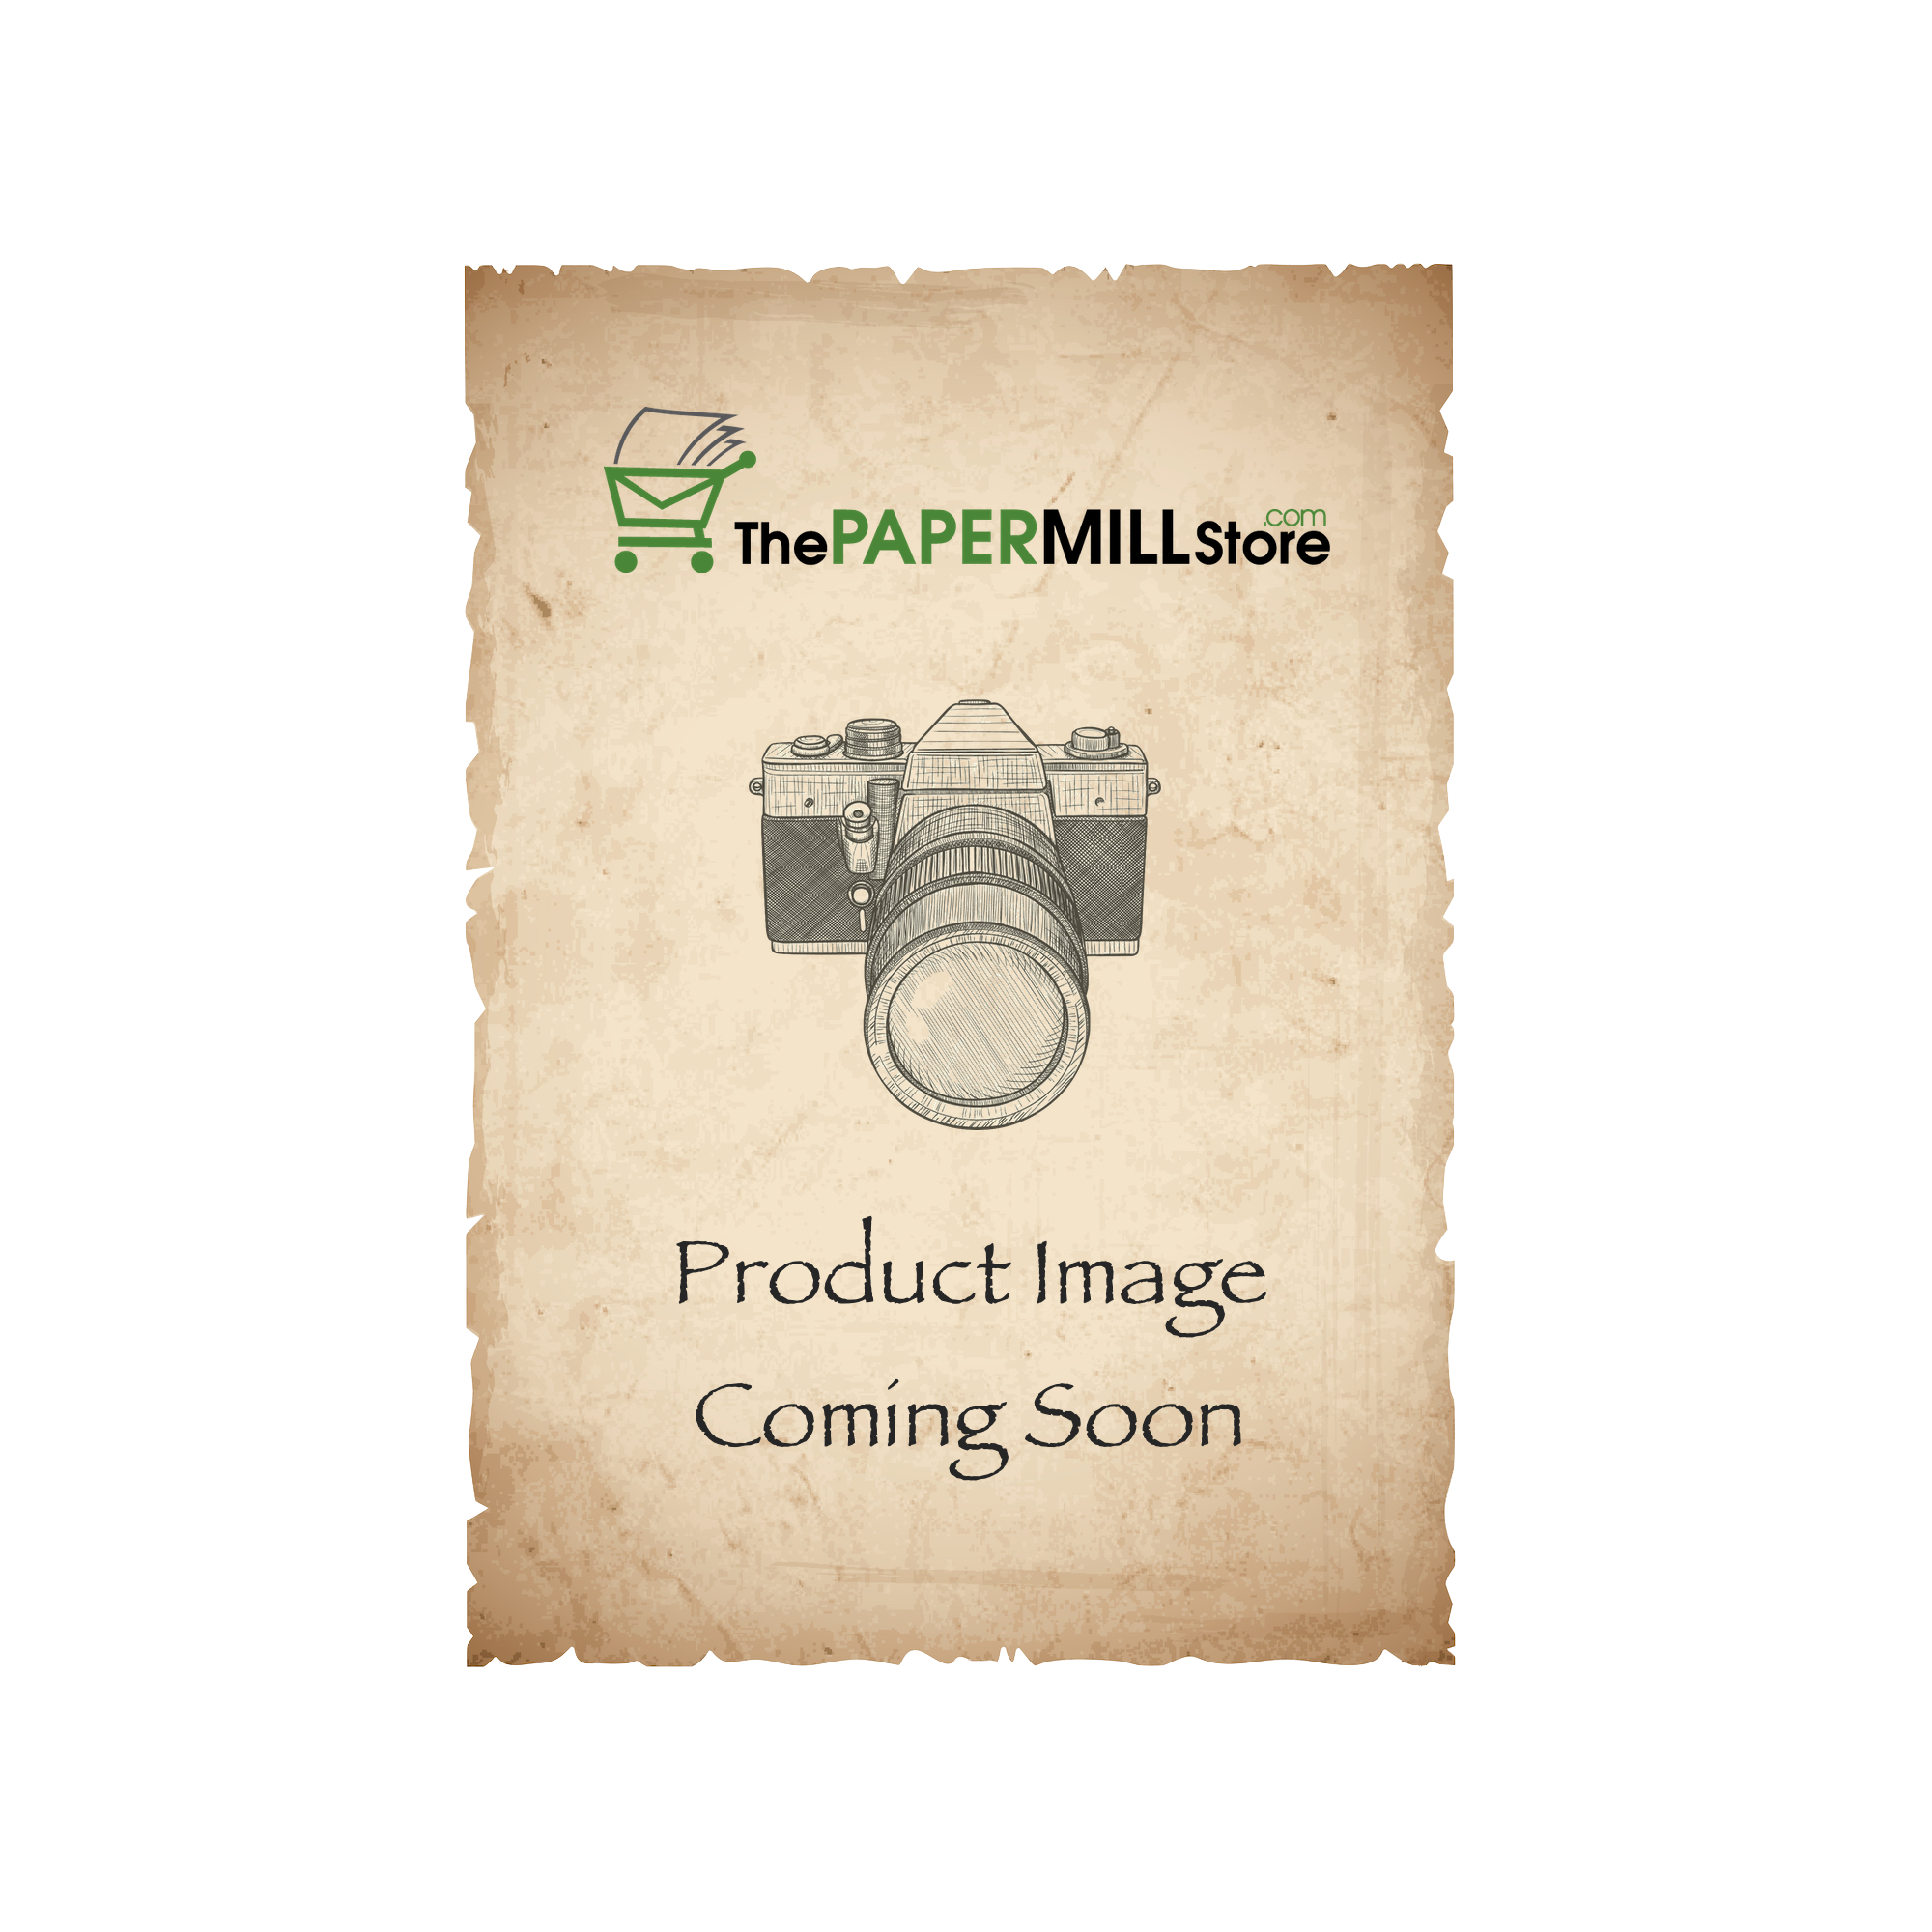 Buy ASPIRE Petallics | Glama Natural | Currency | Tube - CTI Paper USA Metallic and Translucent Text Paper and Cover Paper Sample Swatchbook and Professional Graphics Tool